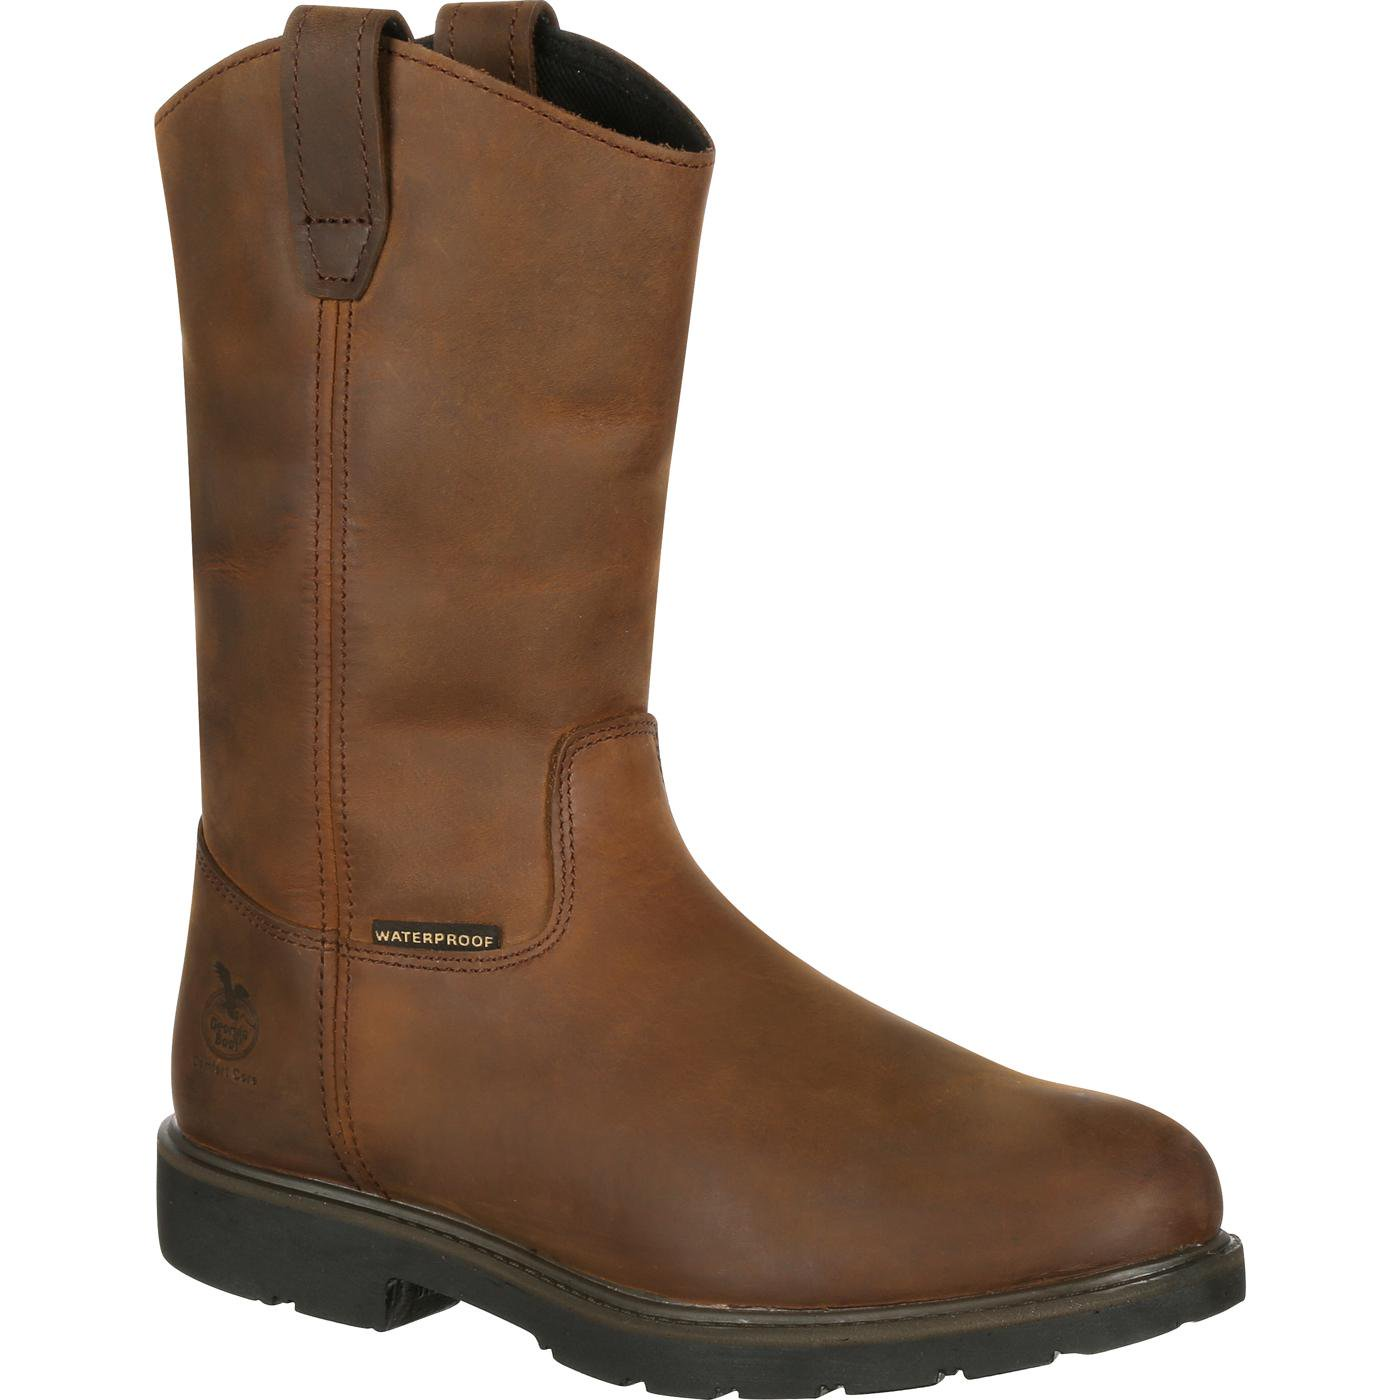 Georgia Boot Suspension System Steel Toe Waterproof Workboot #GB00086